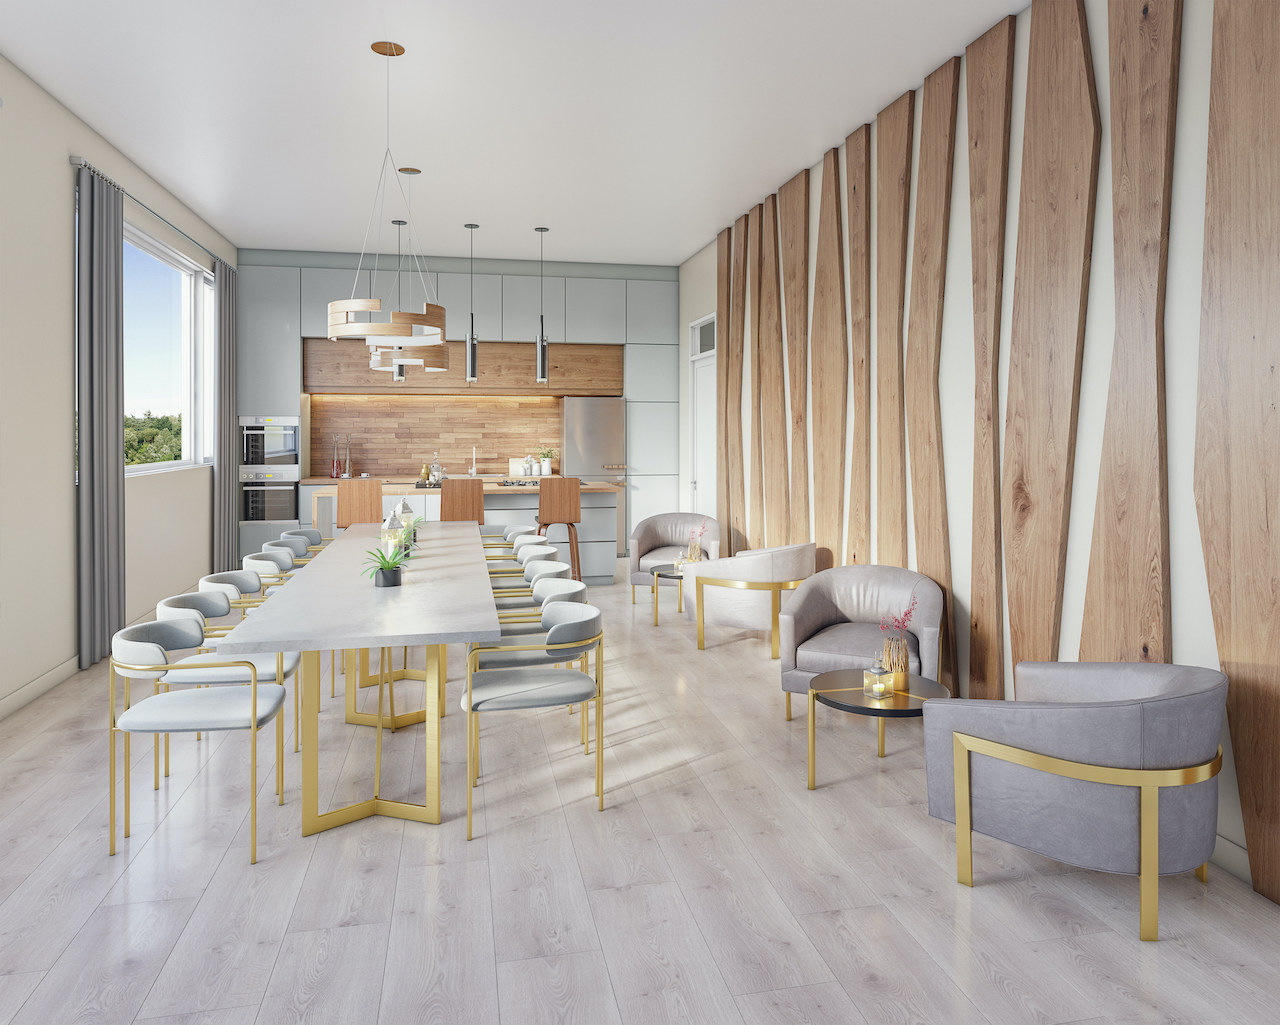 Rendering of Amsterdam Urban Towns O'Connor Drive party room.